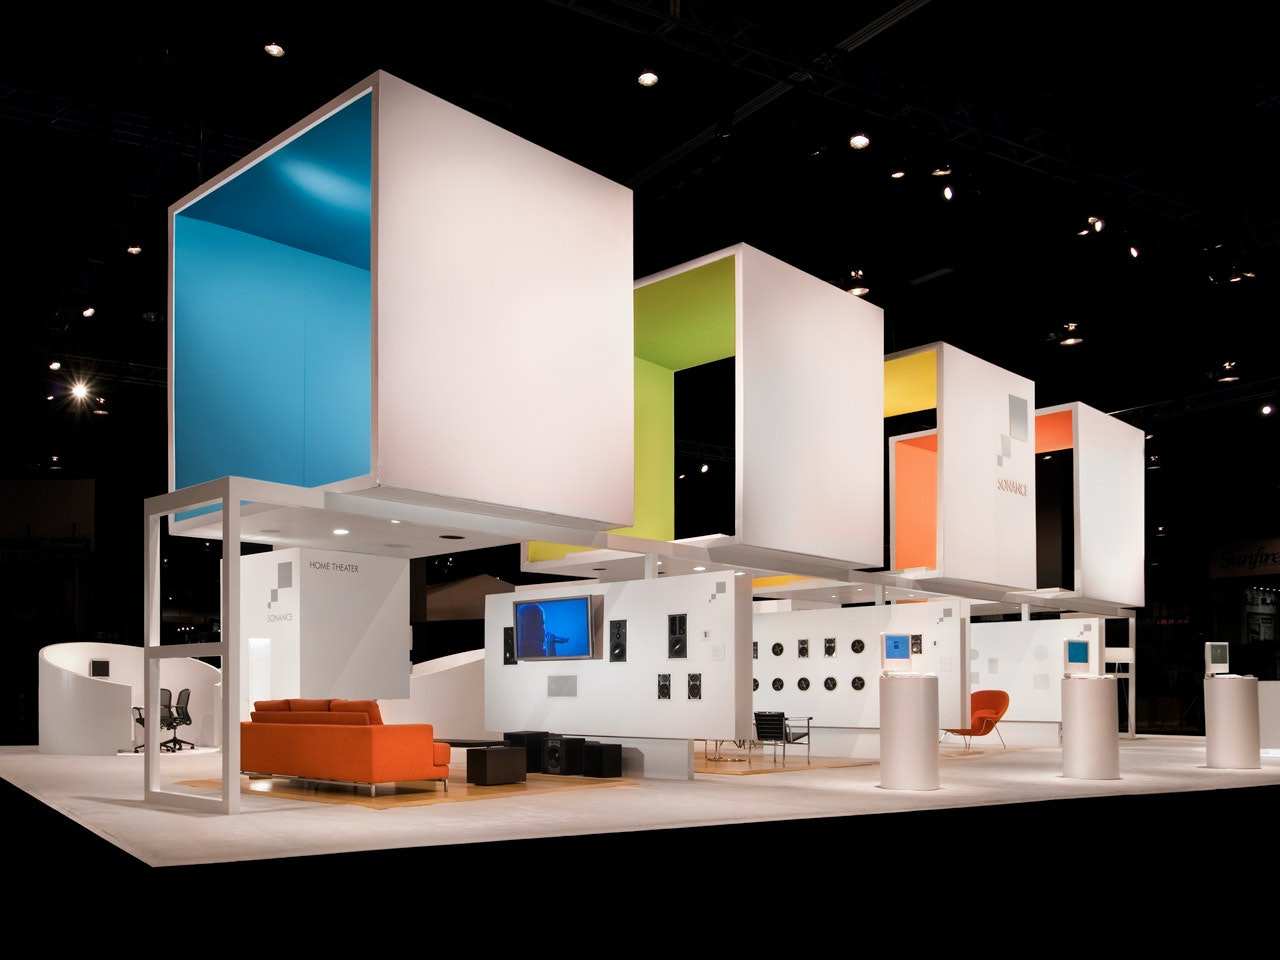 Pentagram Has Designed The Sonance Exhibition Environment At The 2007 CEDIA  Expo, As Well As The Companyu0027s New Graphic Identity And A Range Of  Architectural ...